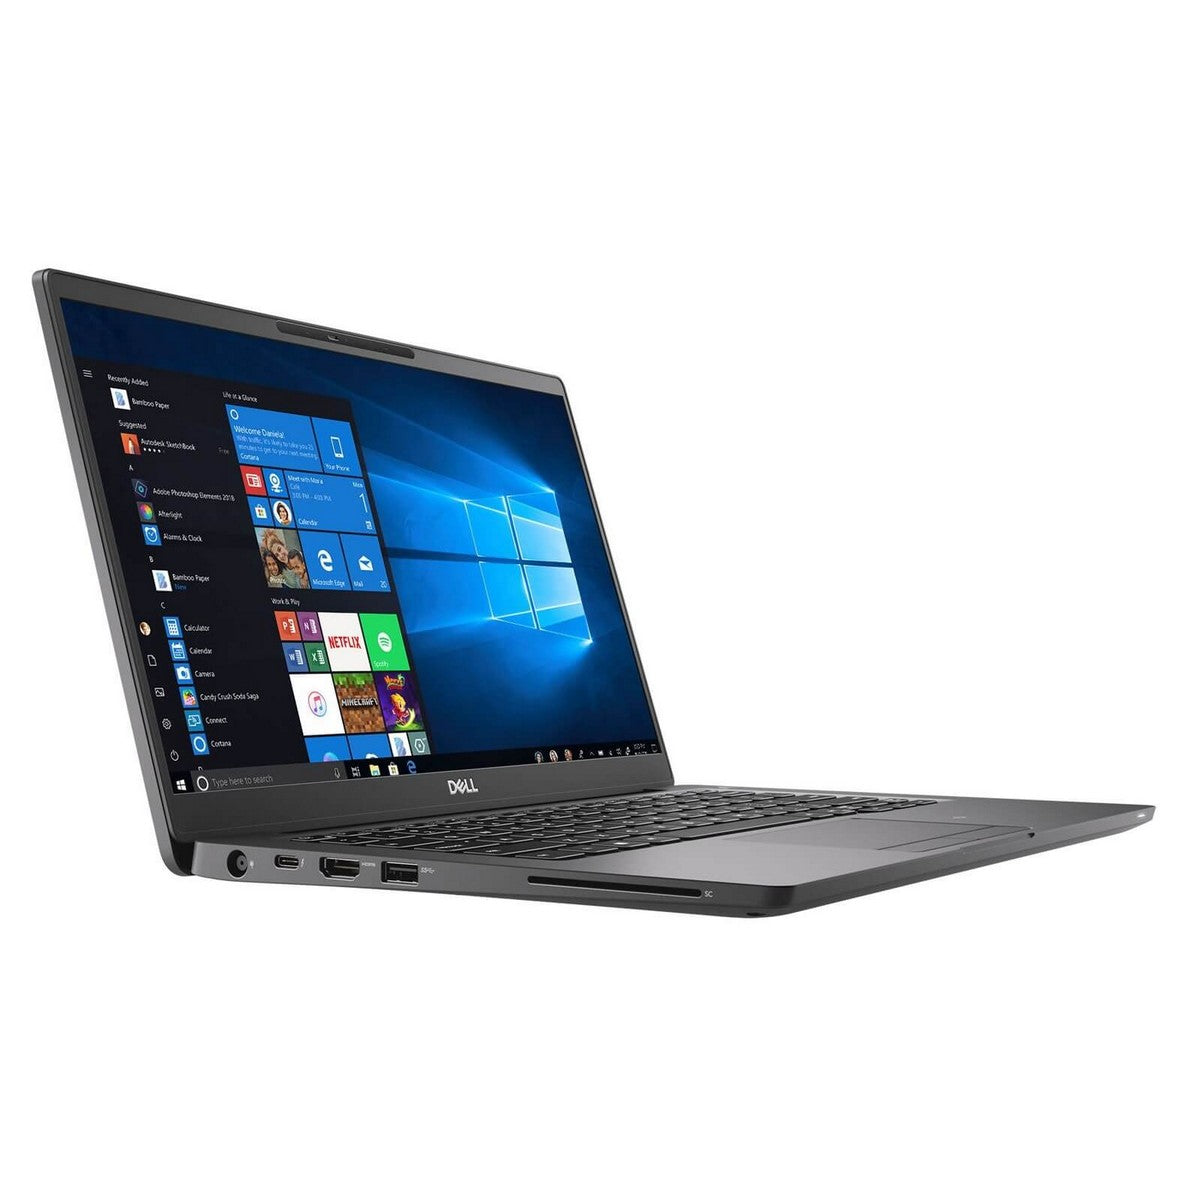 Dell Latitude 7400 Laptop 14'' FHD , Intel Core i7 i7-8665U 1.90GHz 8M Cache up to 4.80GHz, 8GB RAM, Intel UHD620 GPU, 512GB SSD, Windows 10 Pro, Black